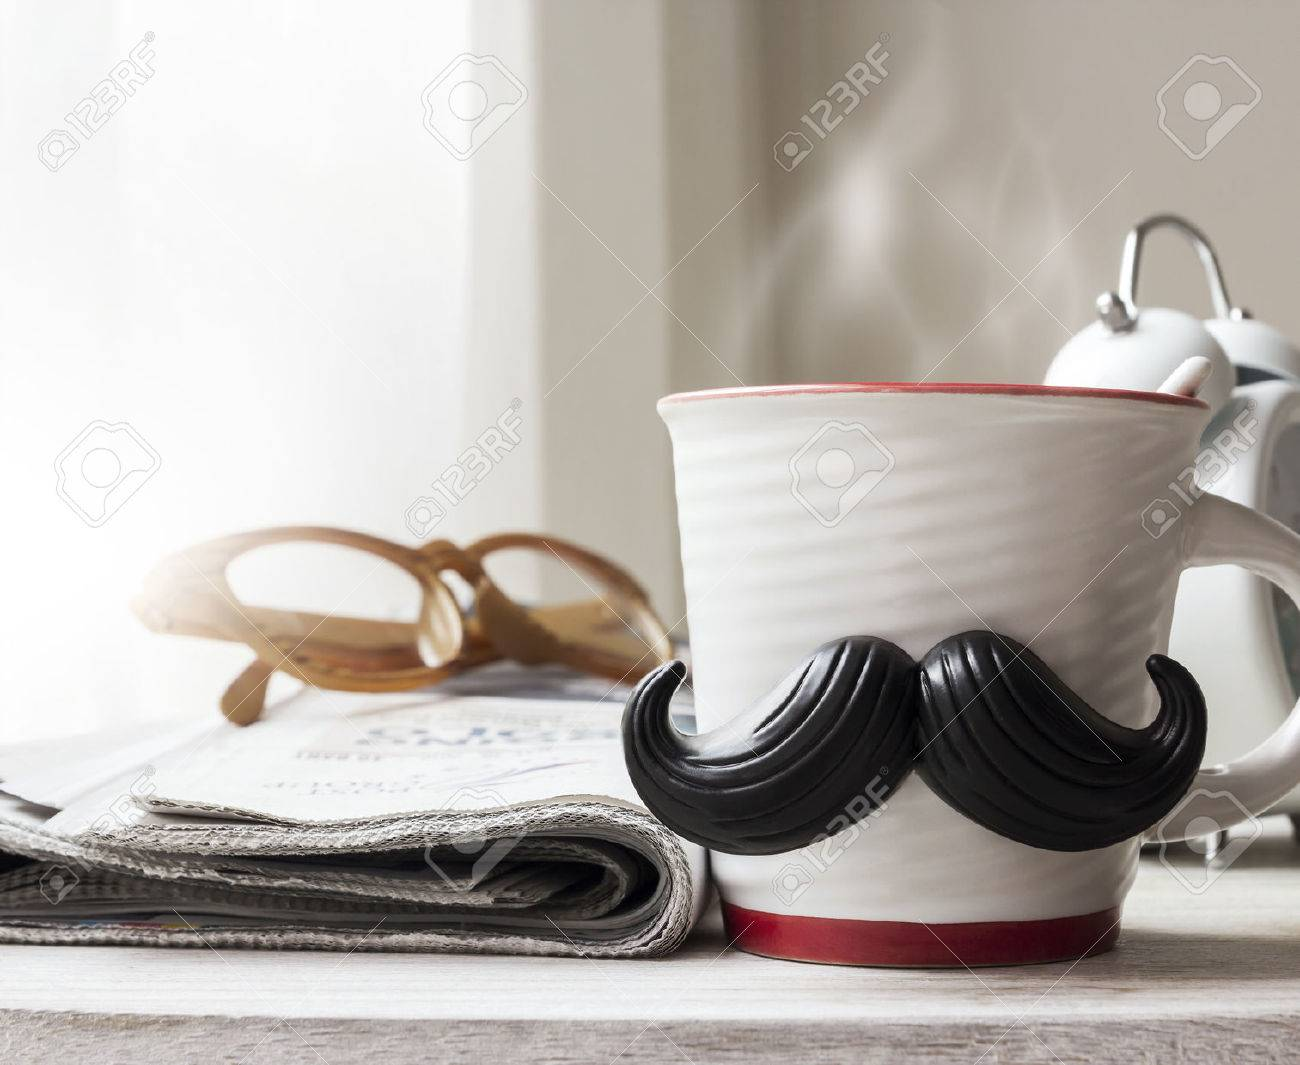 Cup with mustache on wooden table for fathers day concept - 56963101